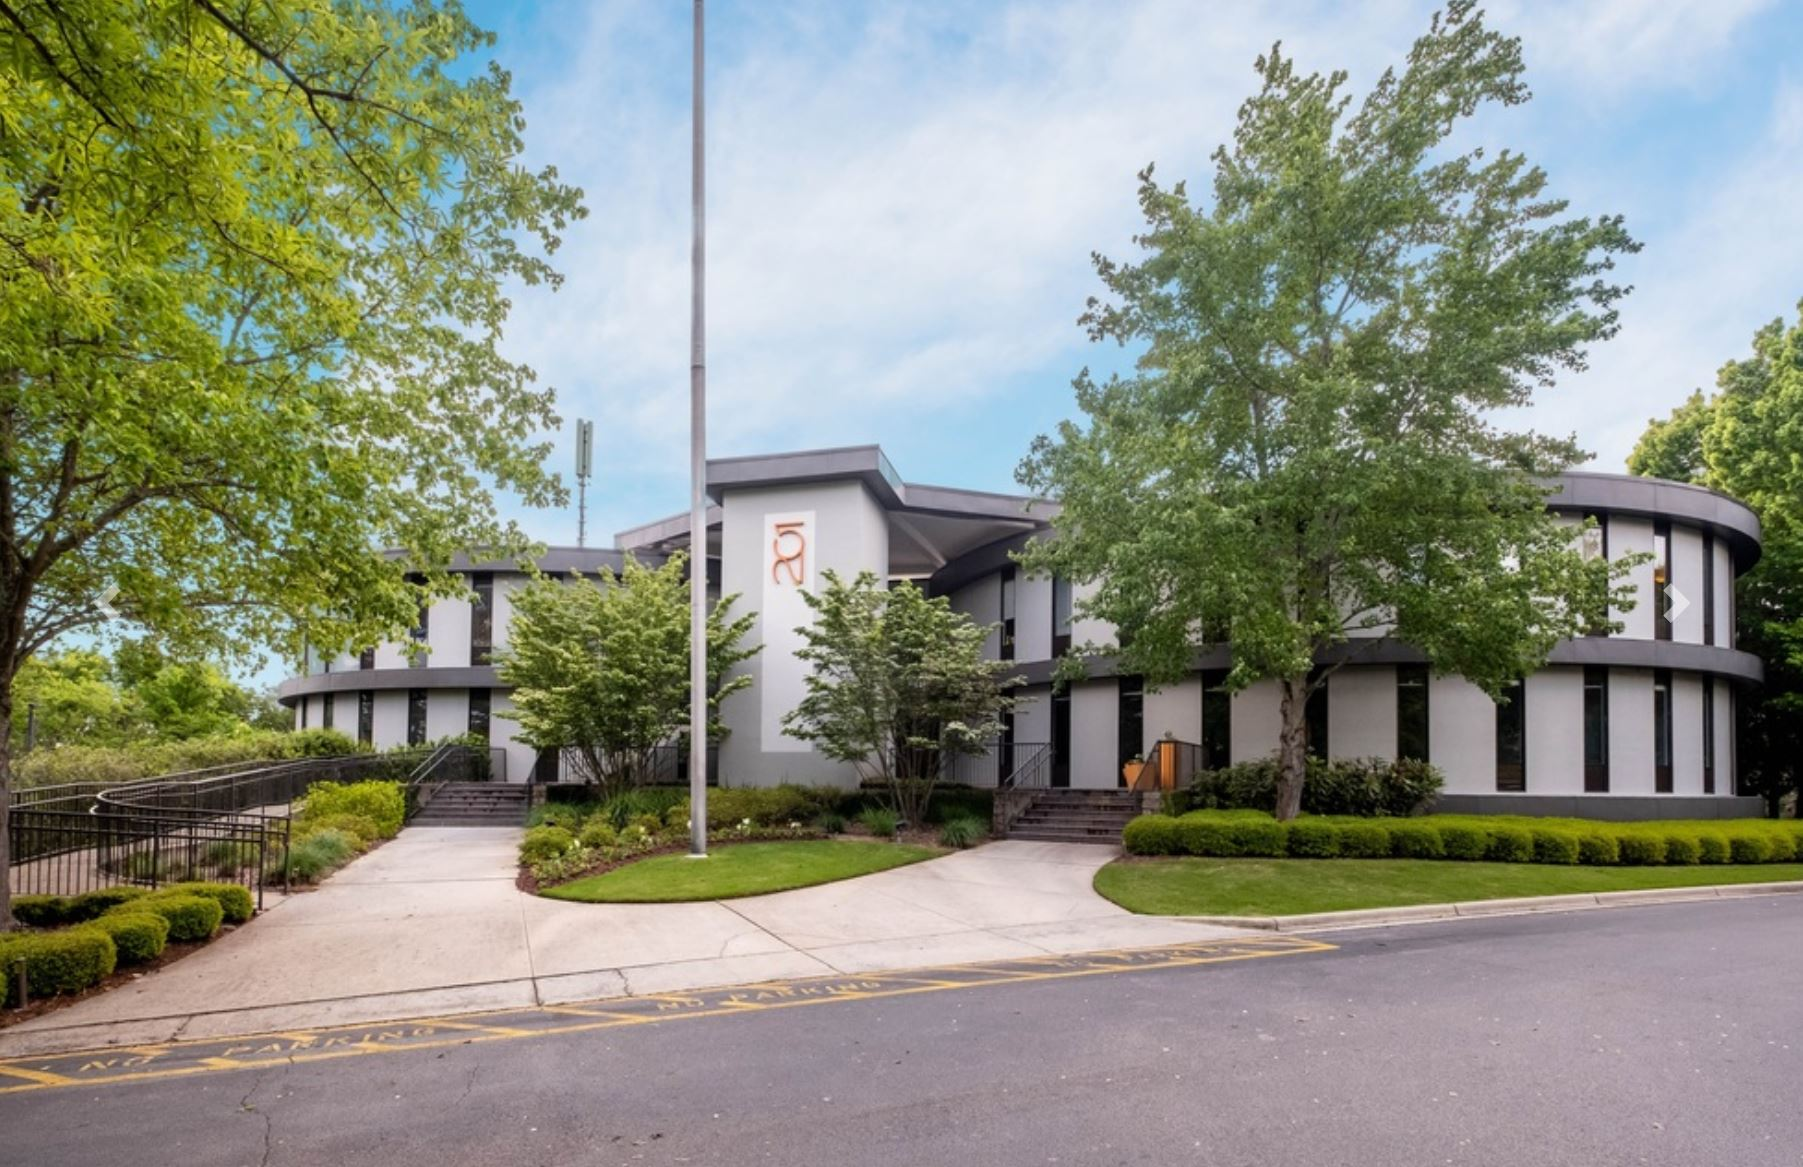 Office building for lease in Mountain brook